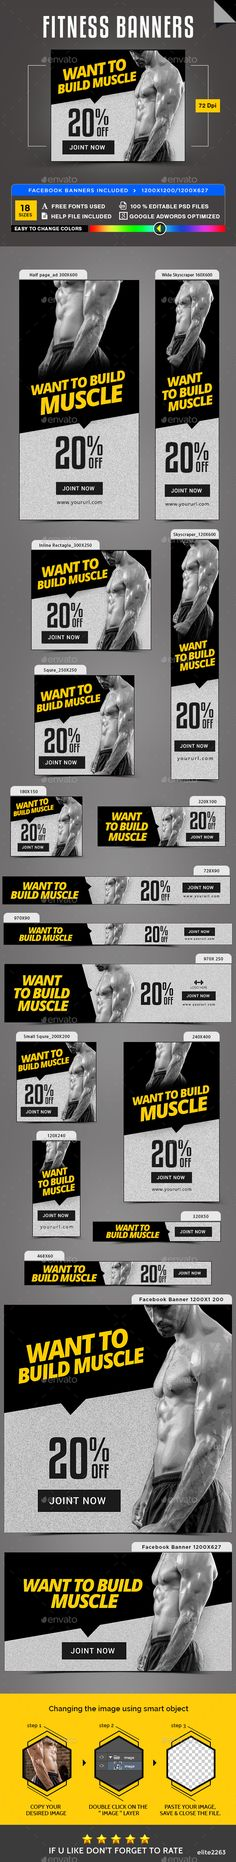 Fitness Banners — Photoshop PSD #template #gif banner • Available here → https://graphicriver.net/item/fitness-banners/19941461?ref=pxcr